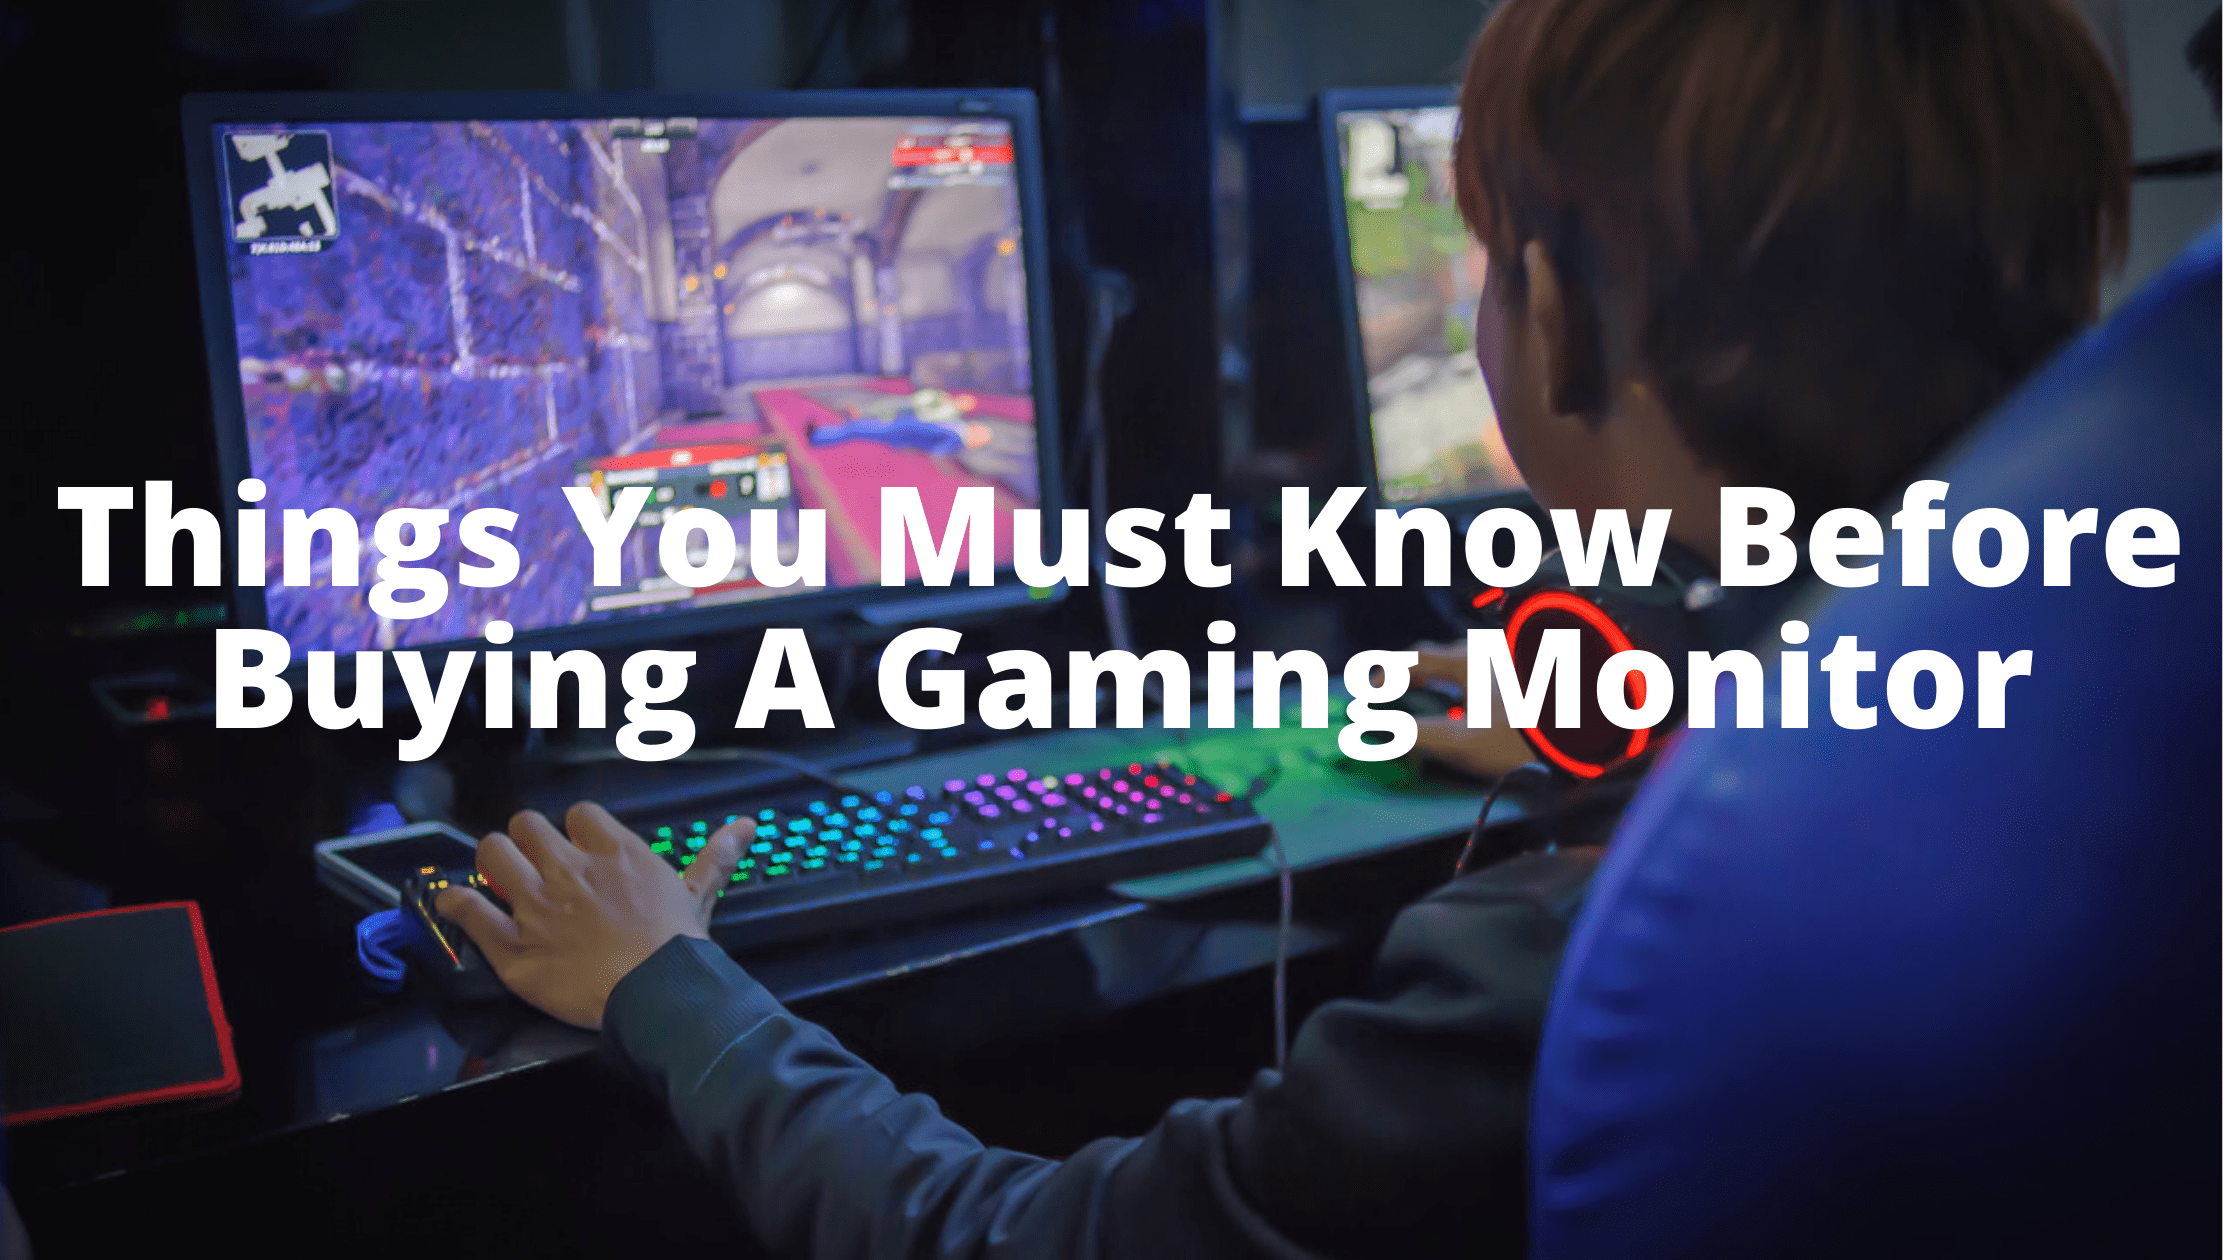 Things You Must Know Before Buying A Gaming Monitor